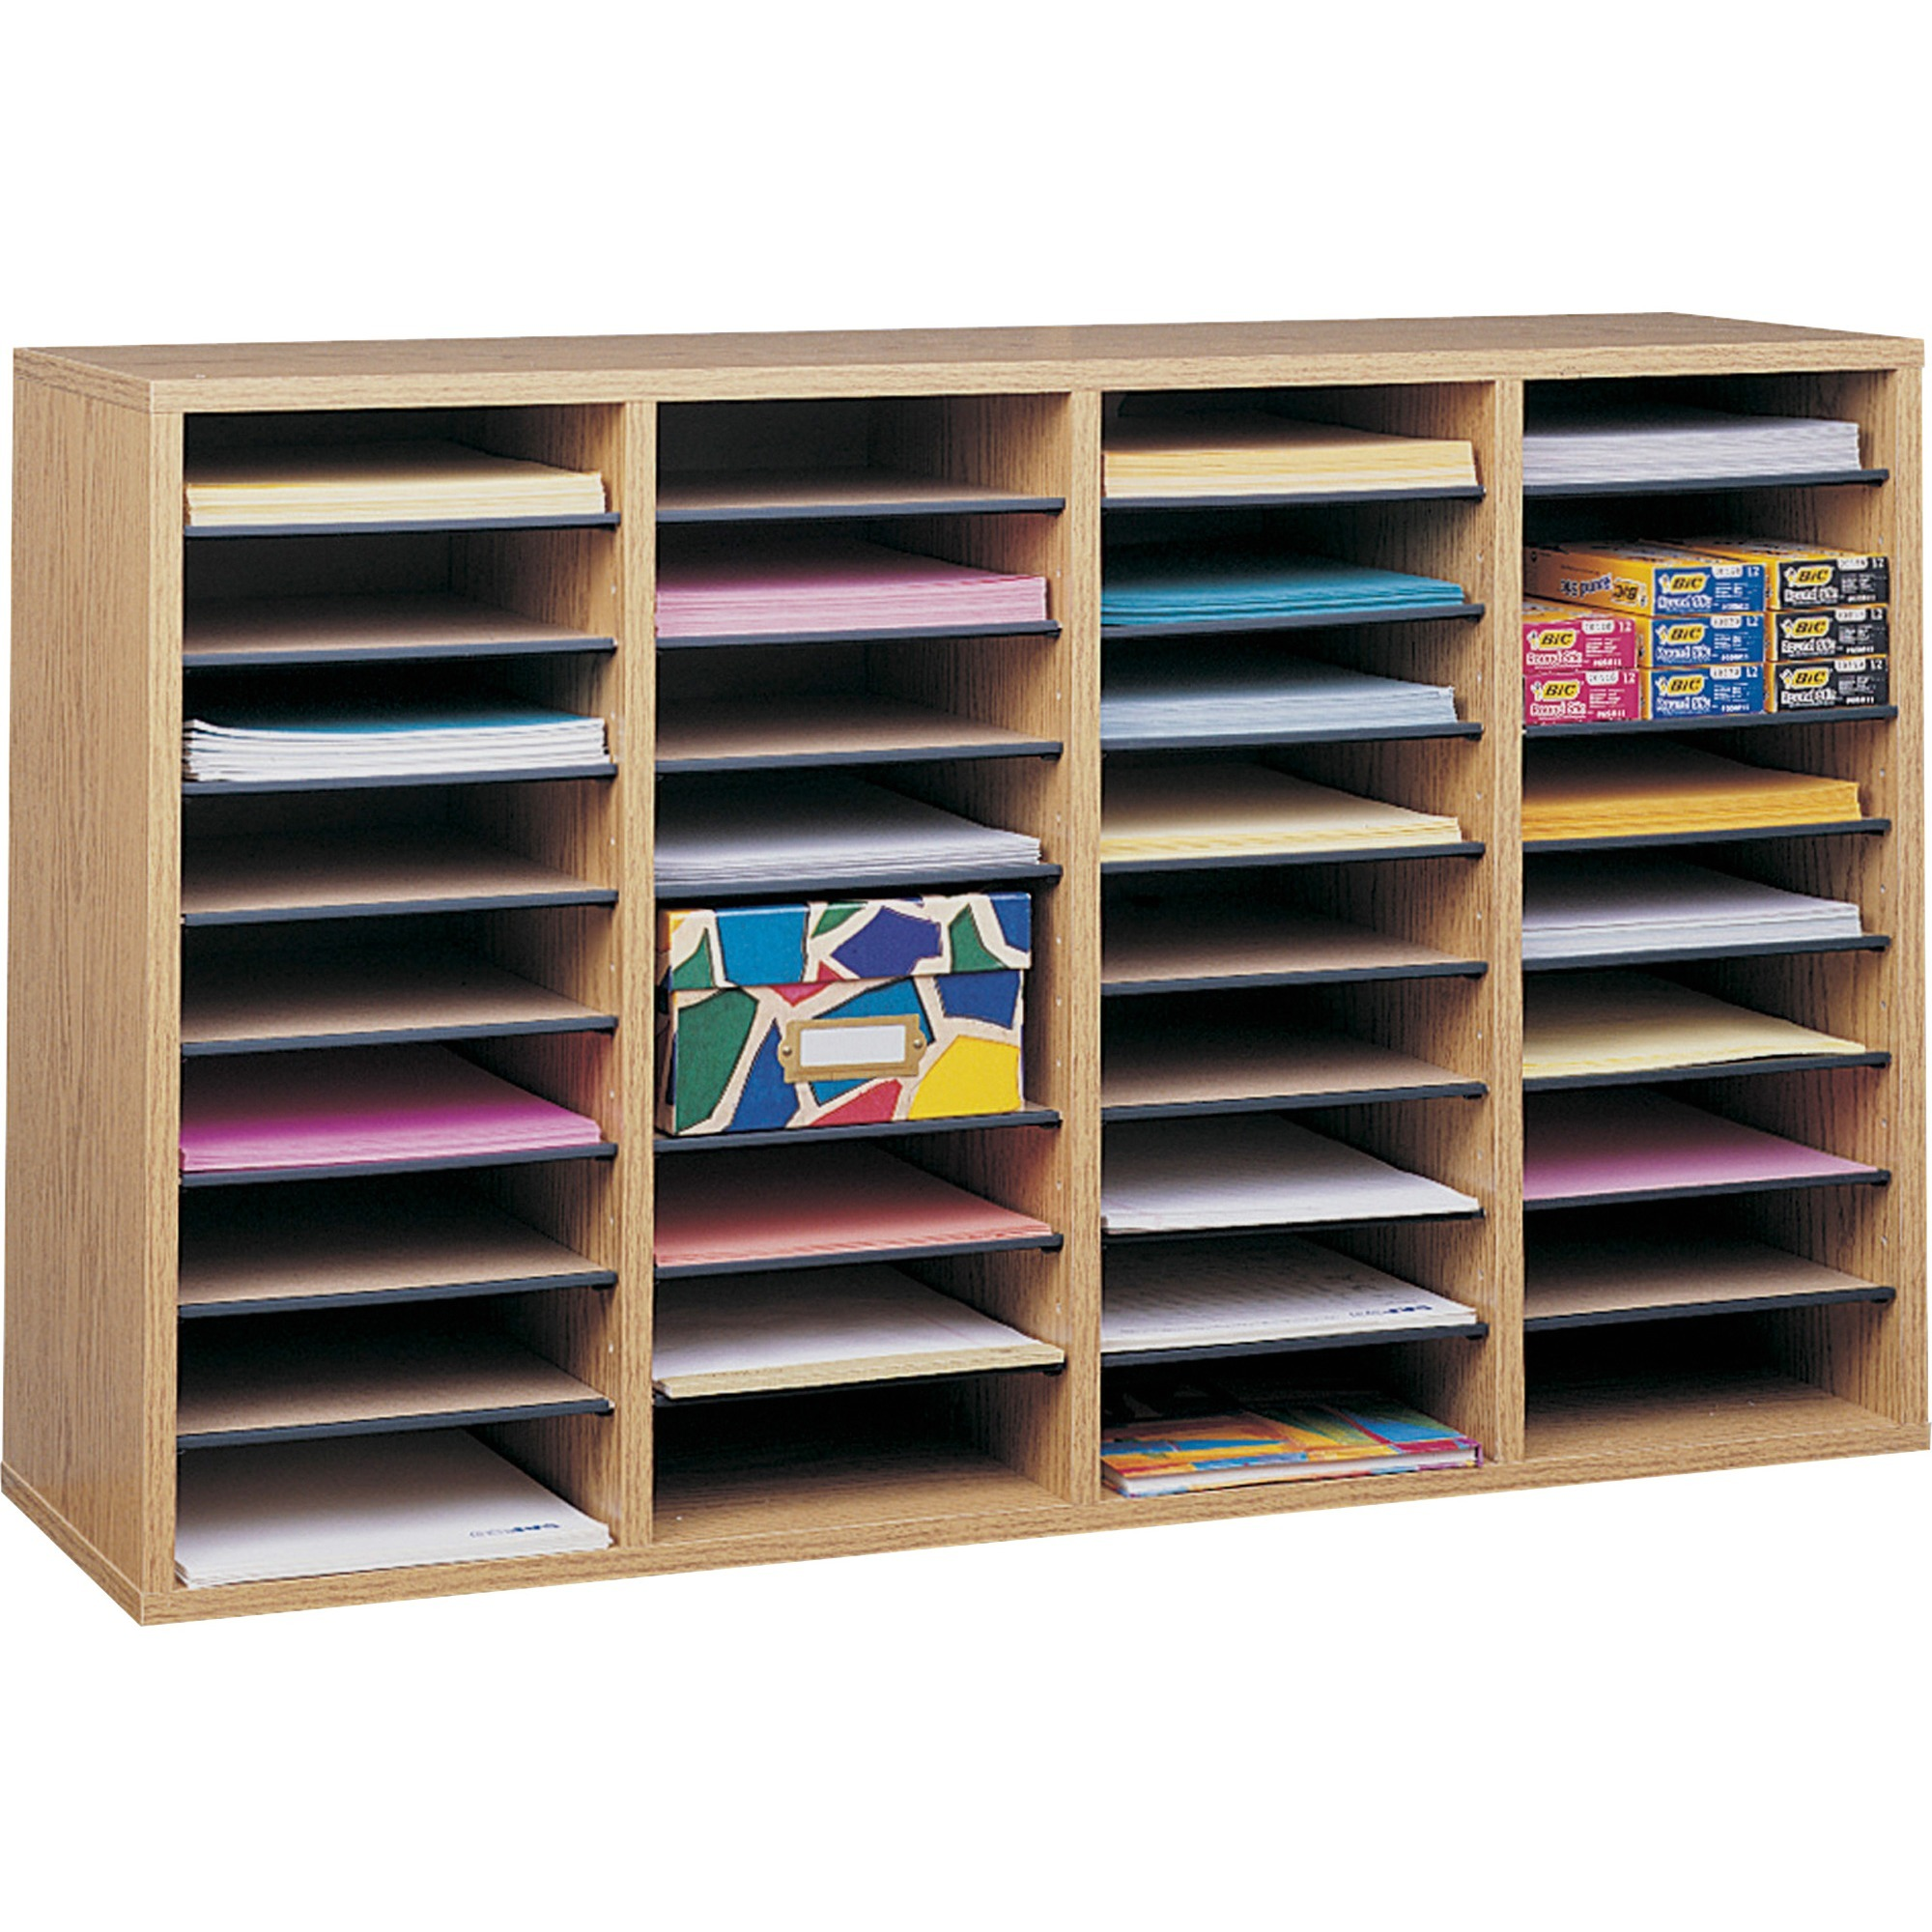 Safco Adjule Shelves Literature Organizers 36 Compartment S Size 2 50 63 Mm X 9 228 60 11 292 10 24 Height